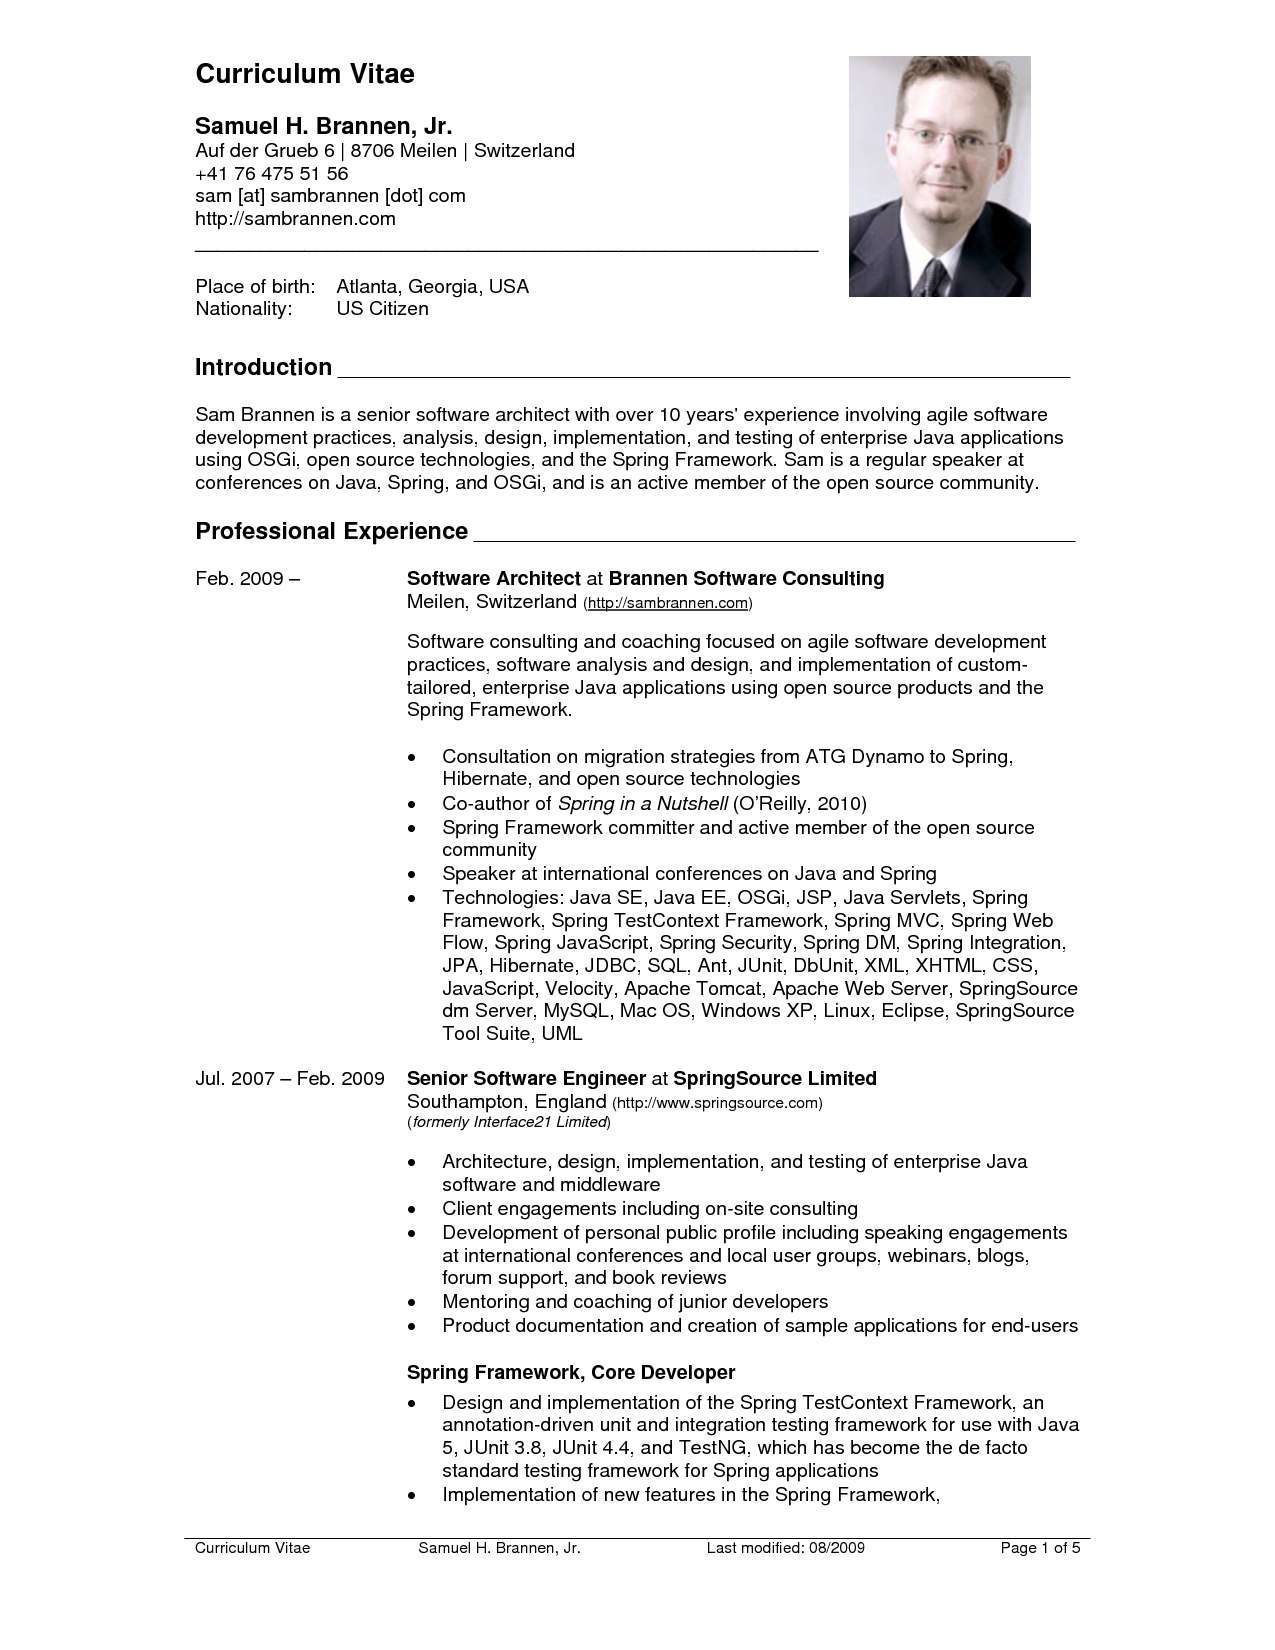 why you need to carefully examine your curriculum vitae